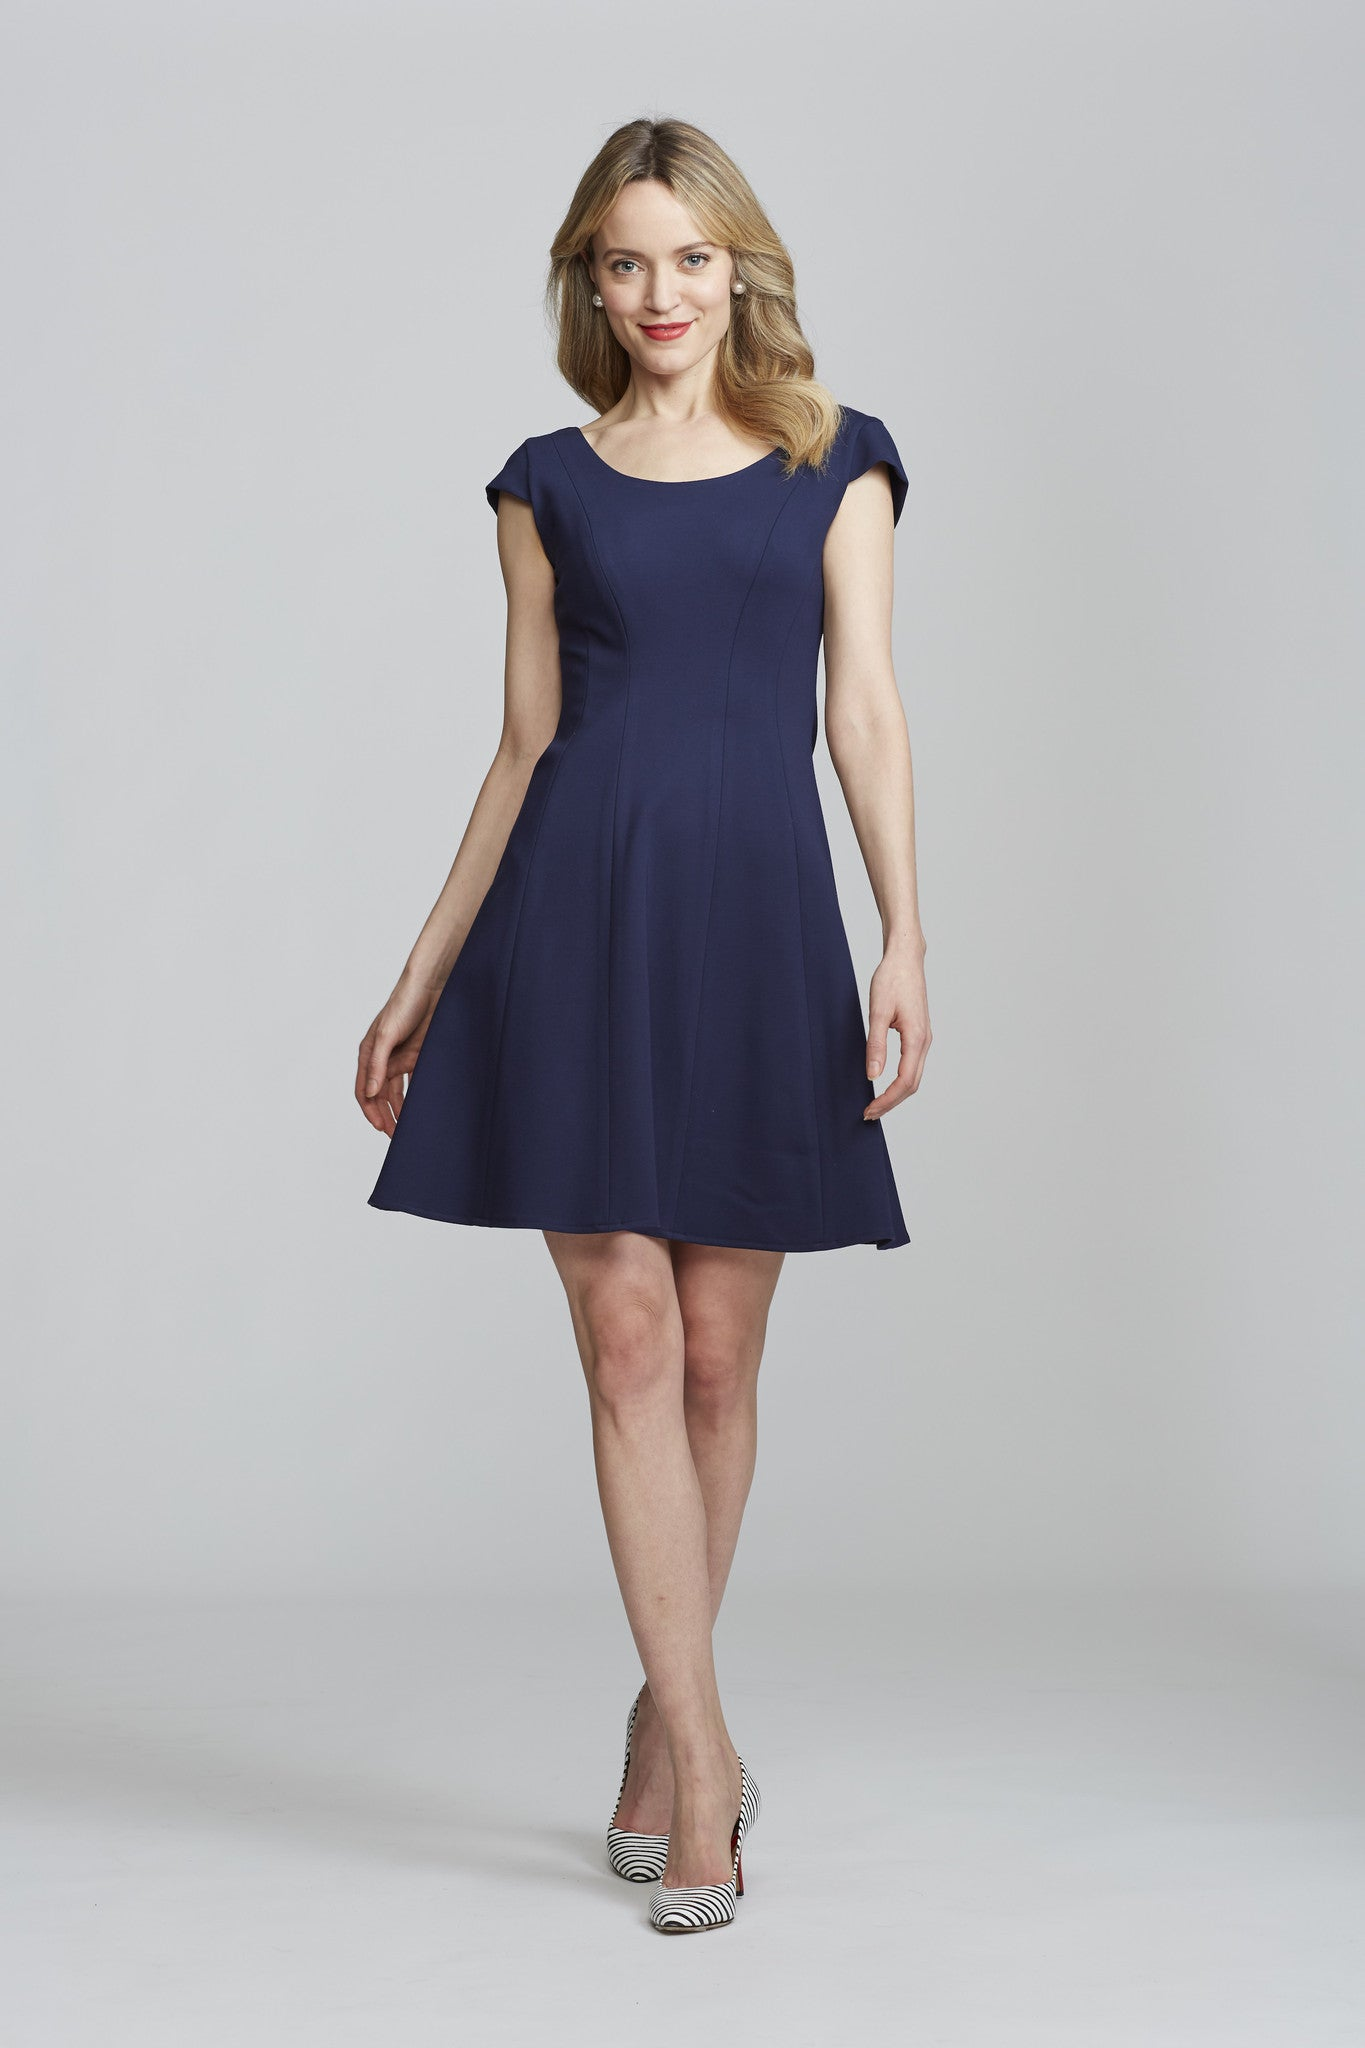 Koko Dress - Navy